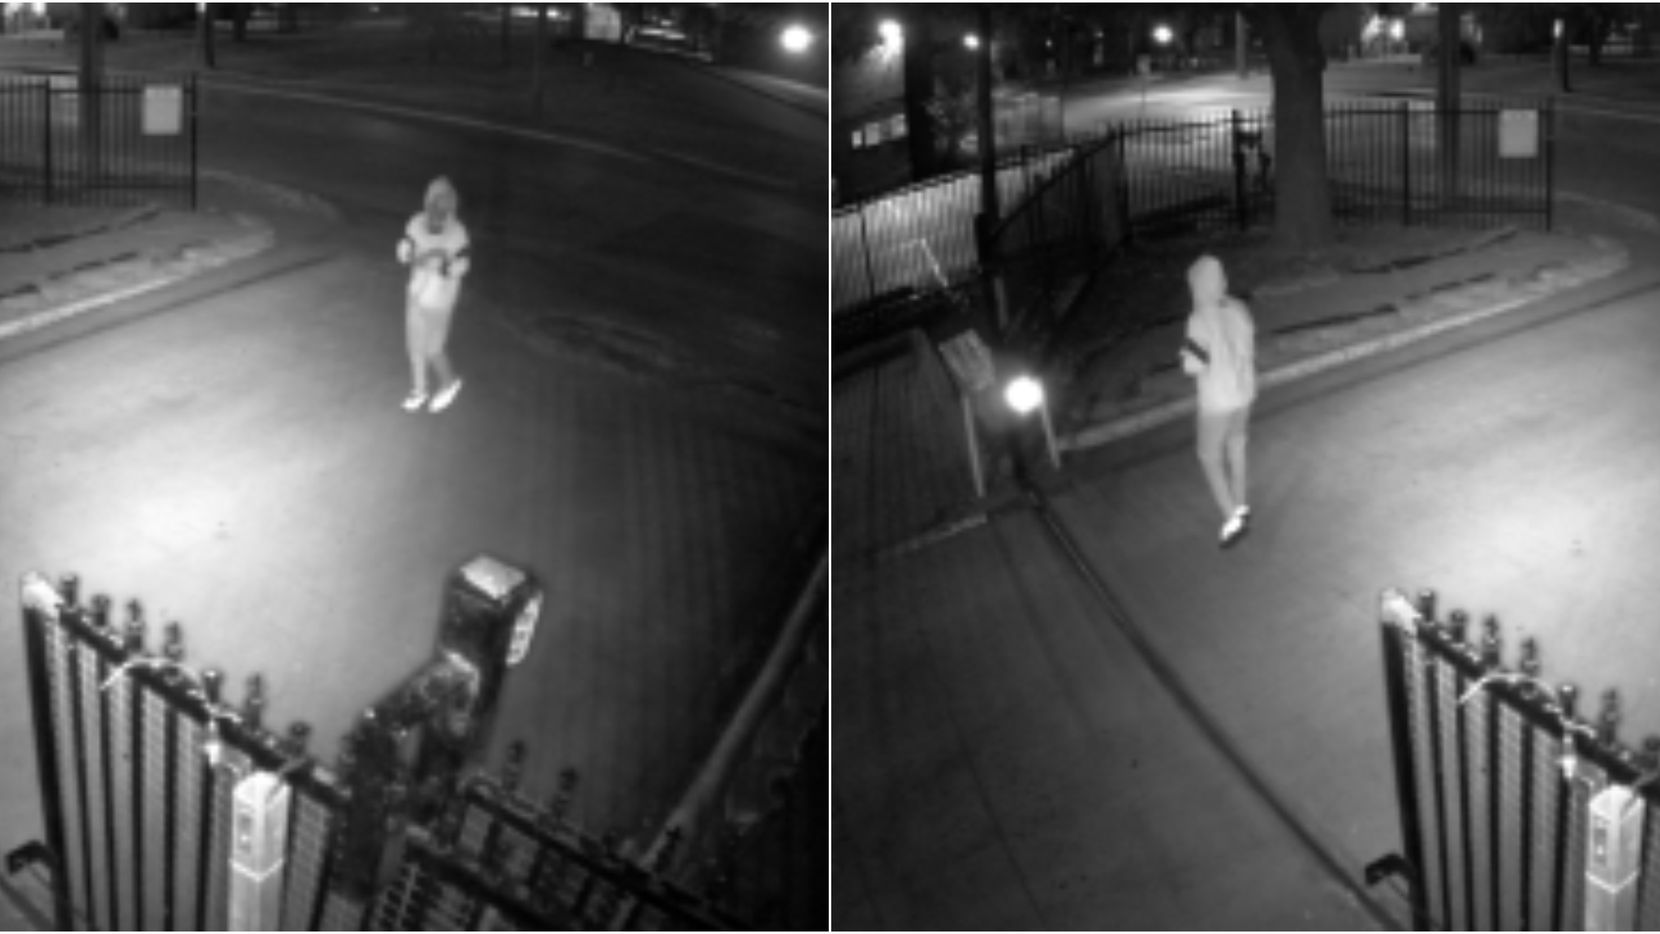 Dallas police released these surveillance images in connection with the shooting death of Brandon Washington on Aug. 30.